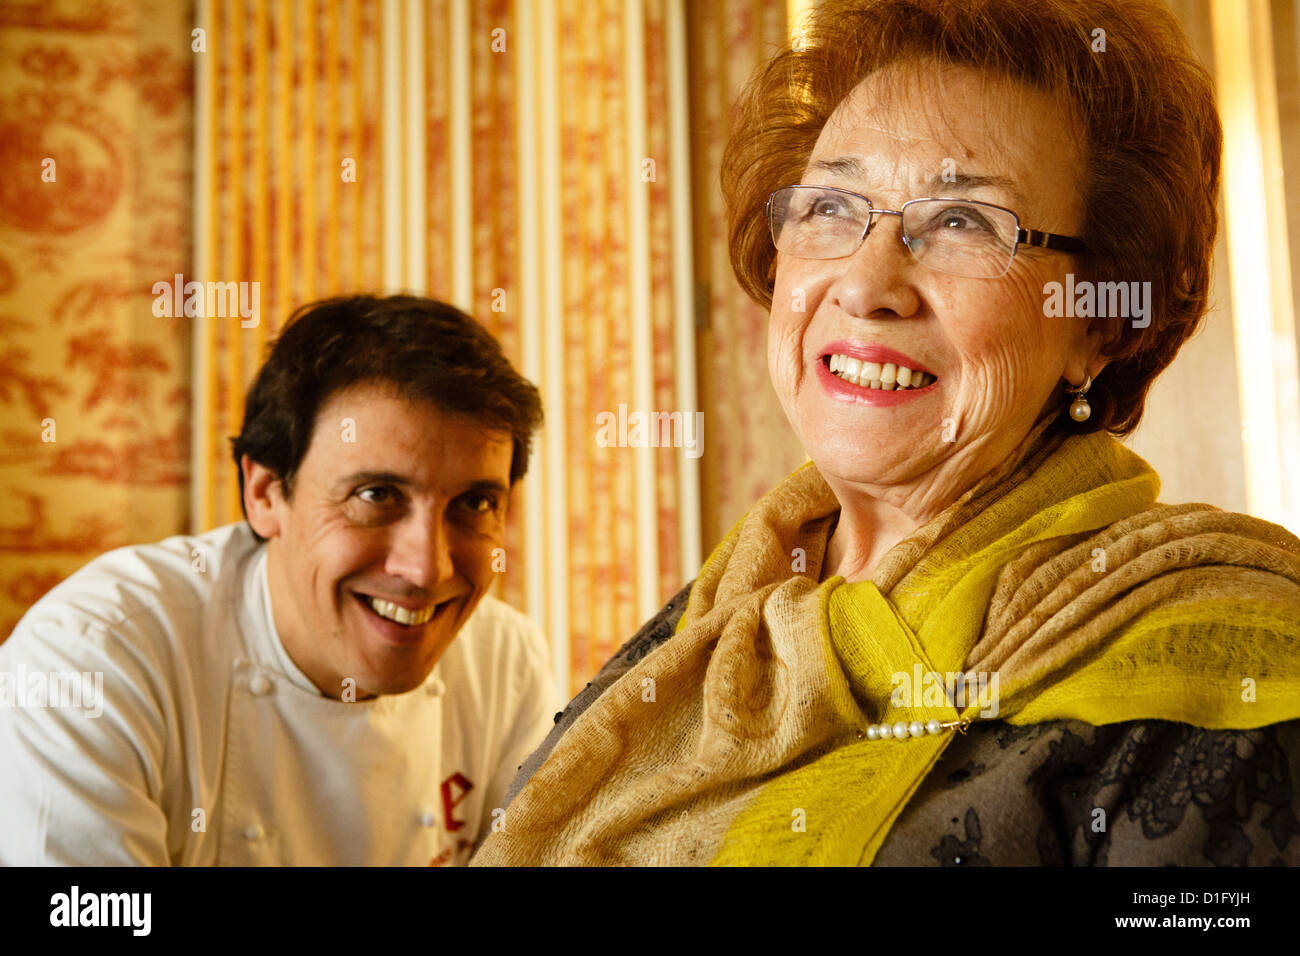 22/11/12 Chefs Marisa Sanchez and her son Francis Paniego at Hotel Echaurren, Ezcaray, La Rioja, Spain - Stock Image